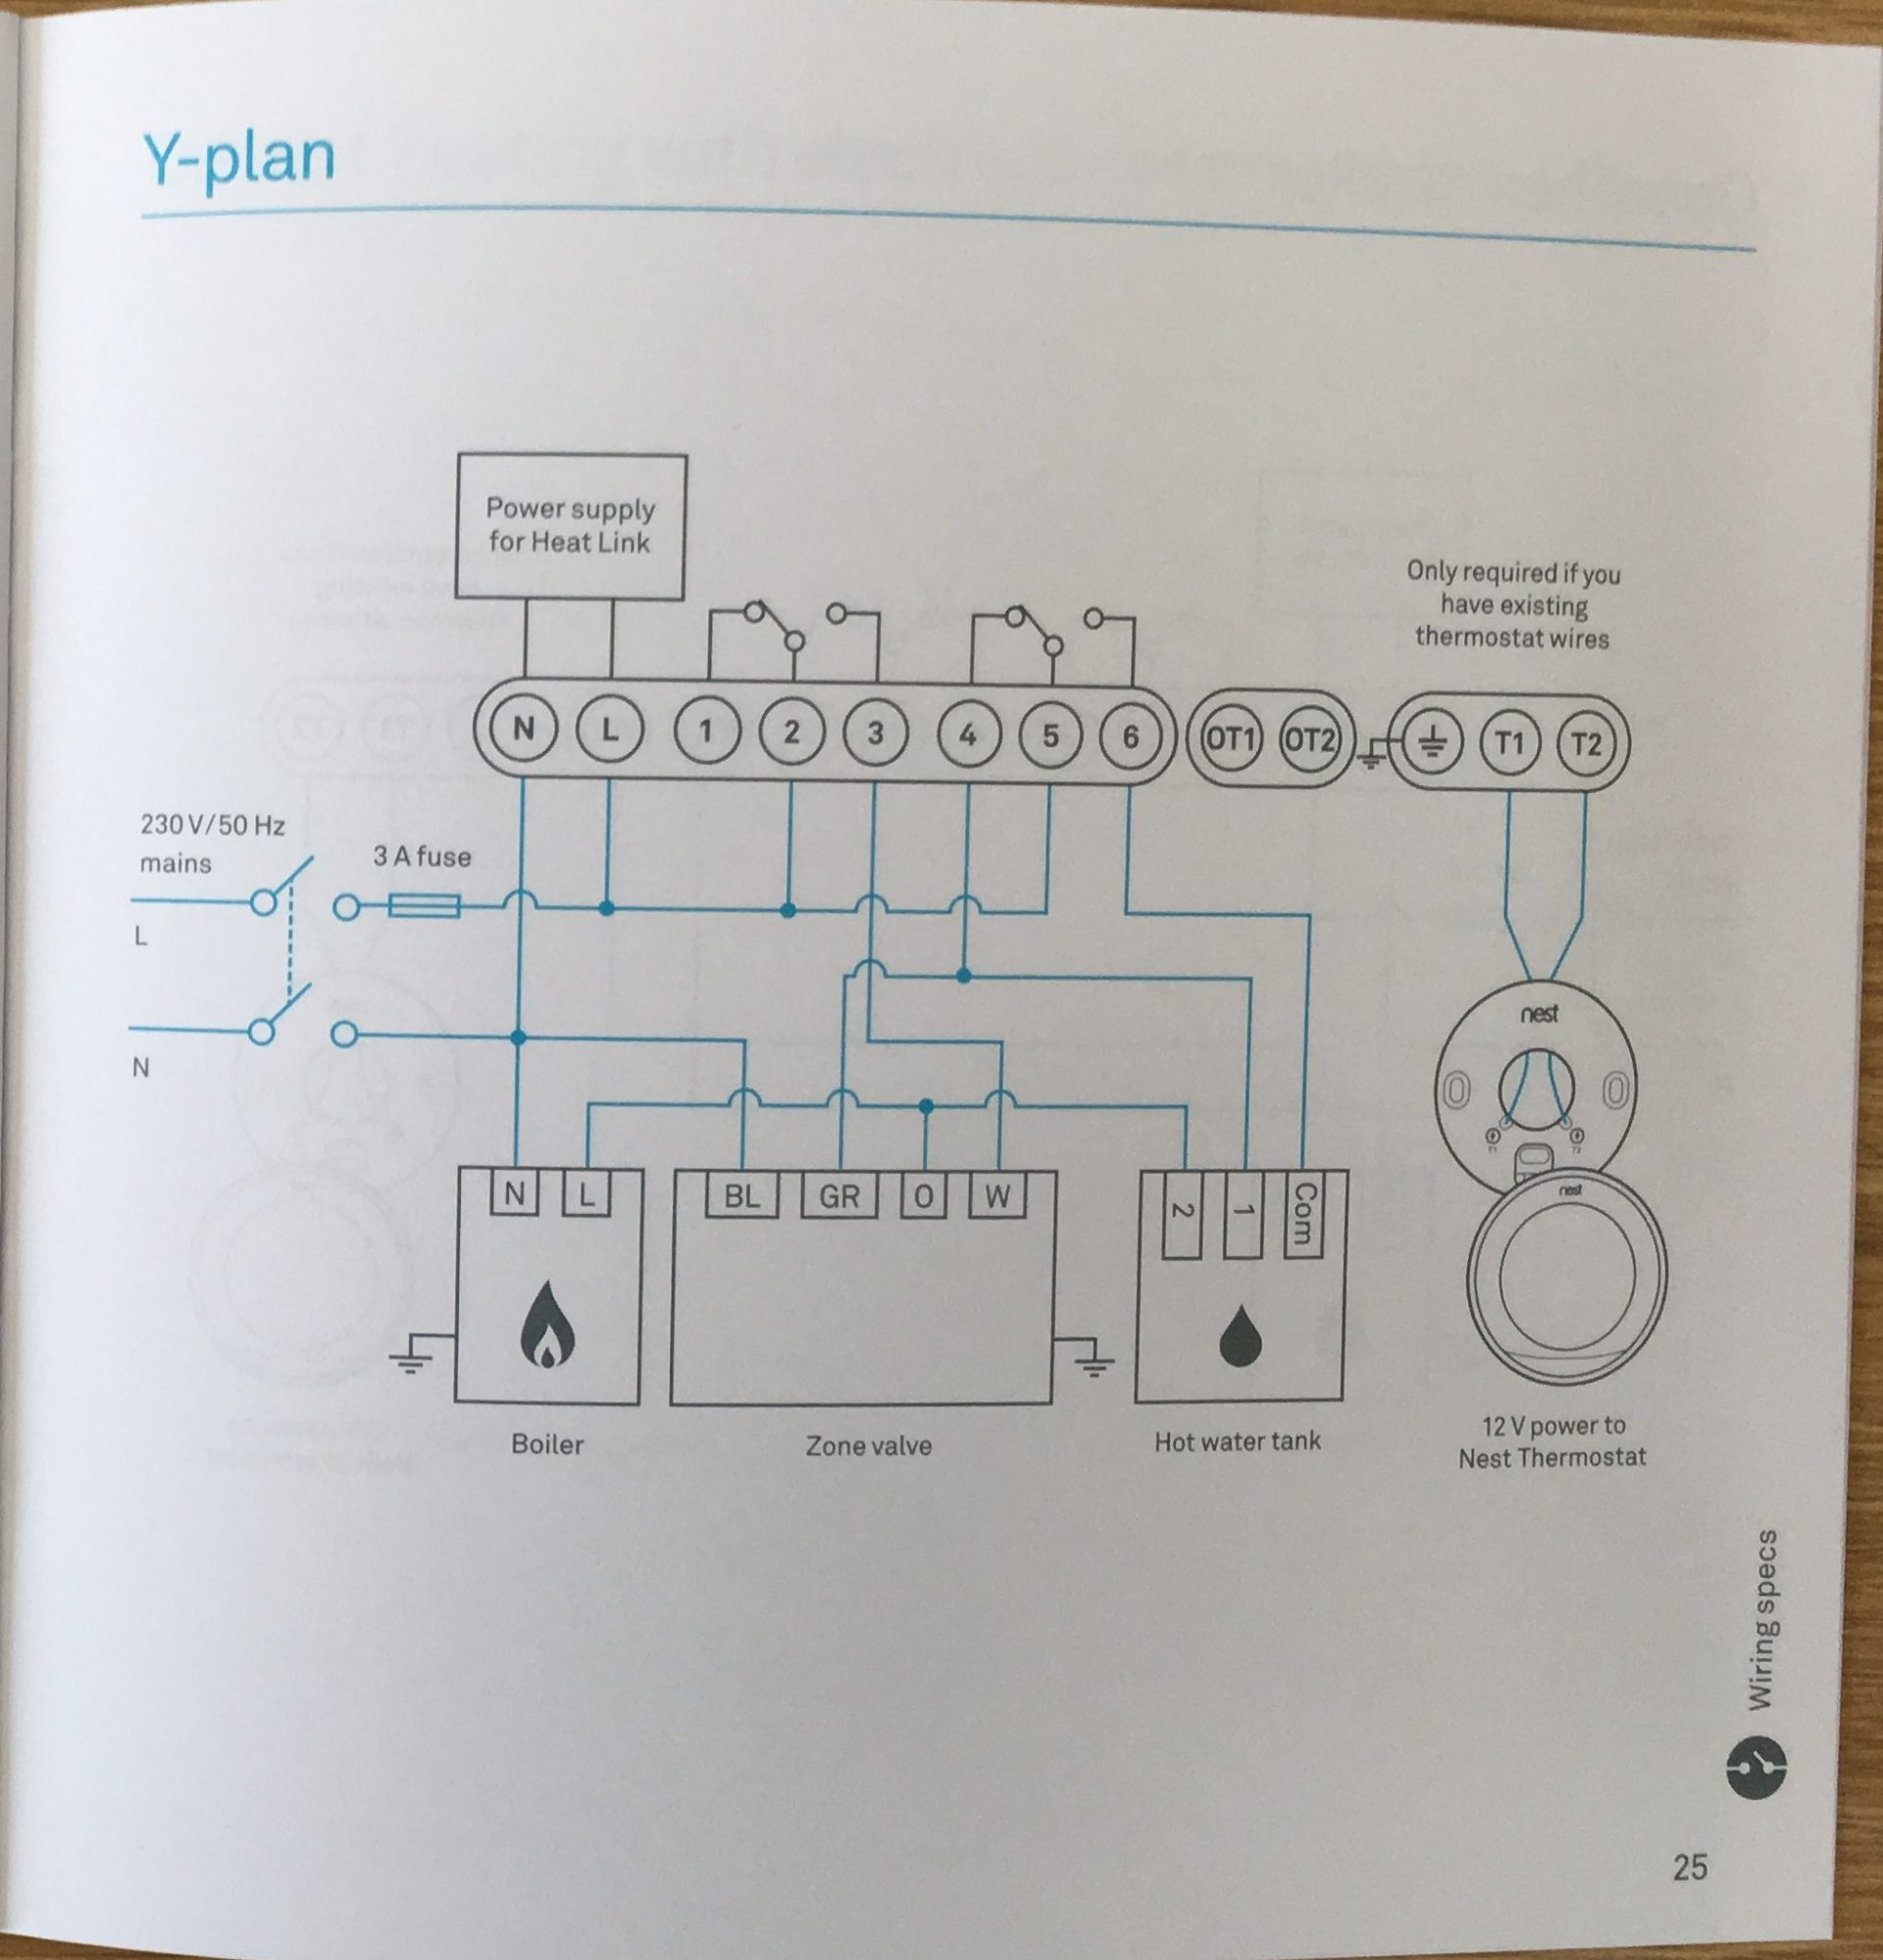 How To Install The Nest Learning Thermostat (3Rd Gen) In A Y-Plan - Nest Controller Wiring Diagram